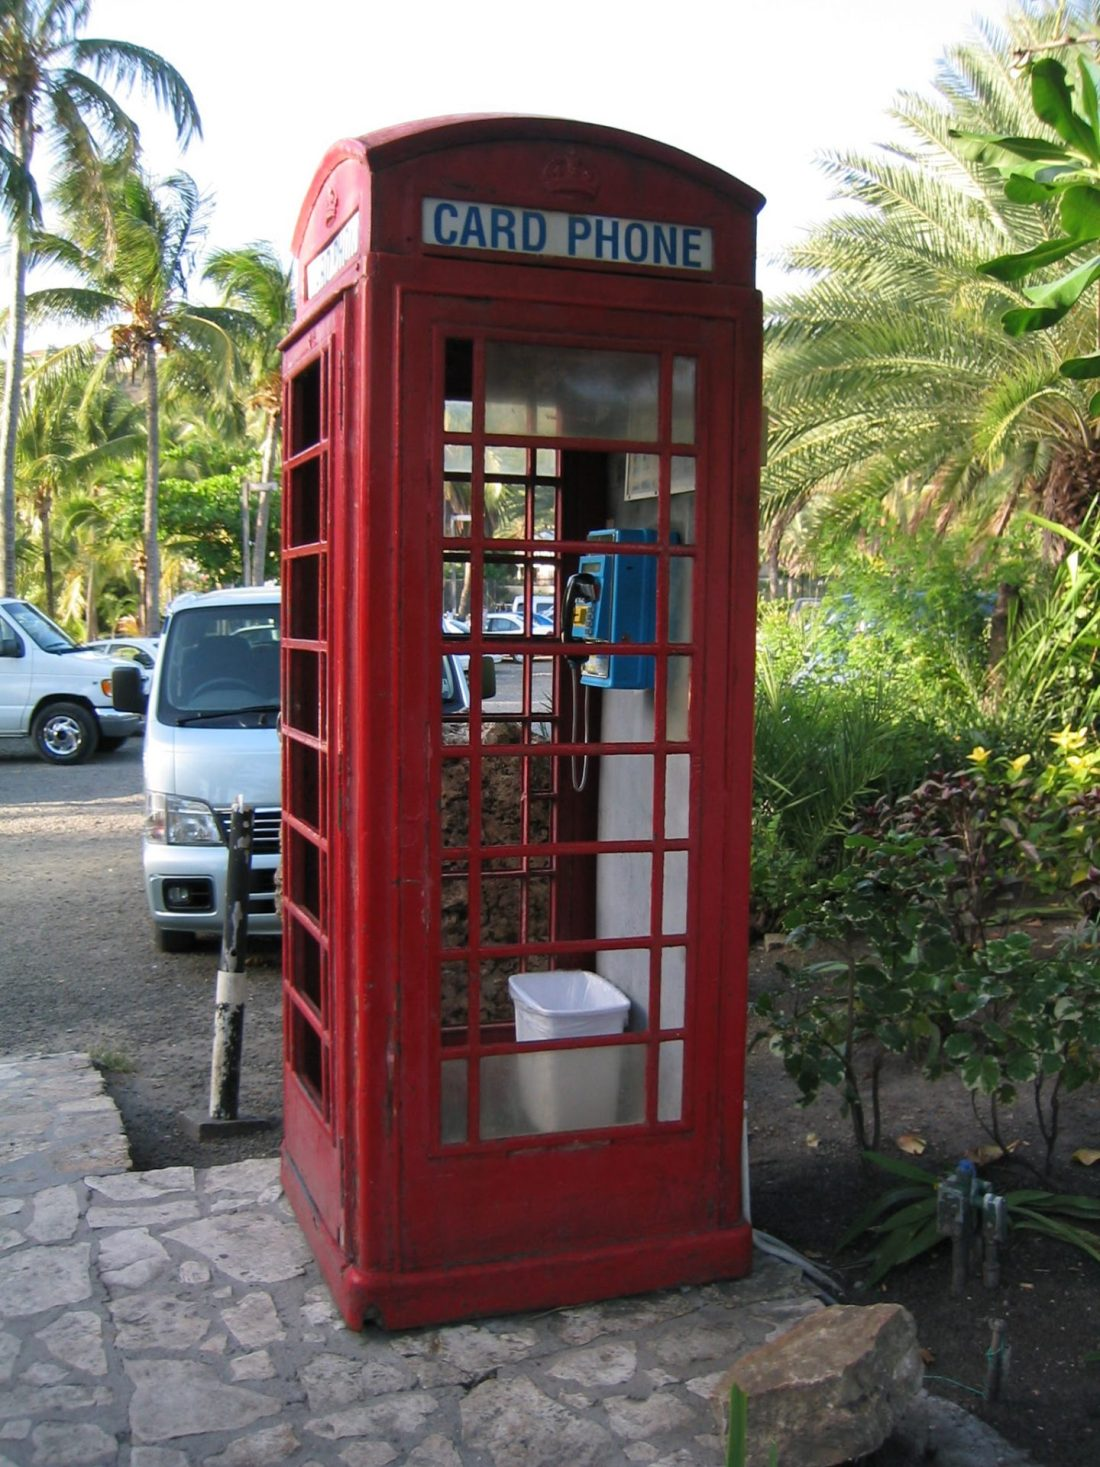 London phone box in the Caribbean